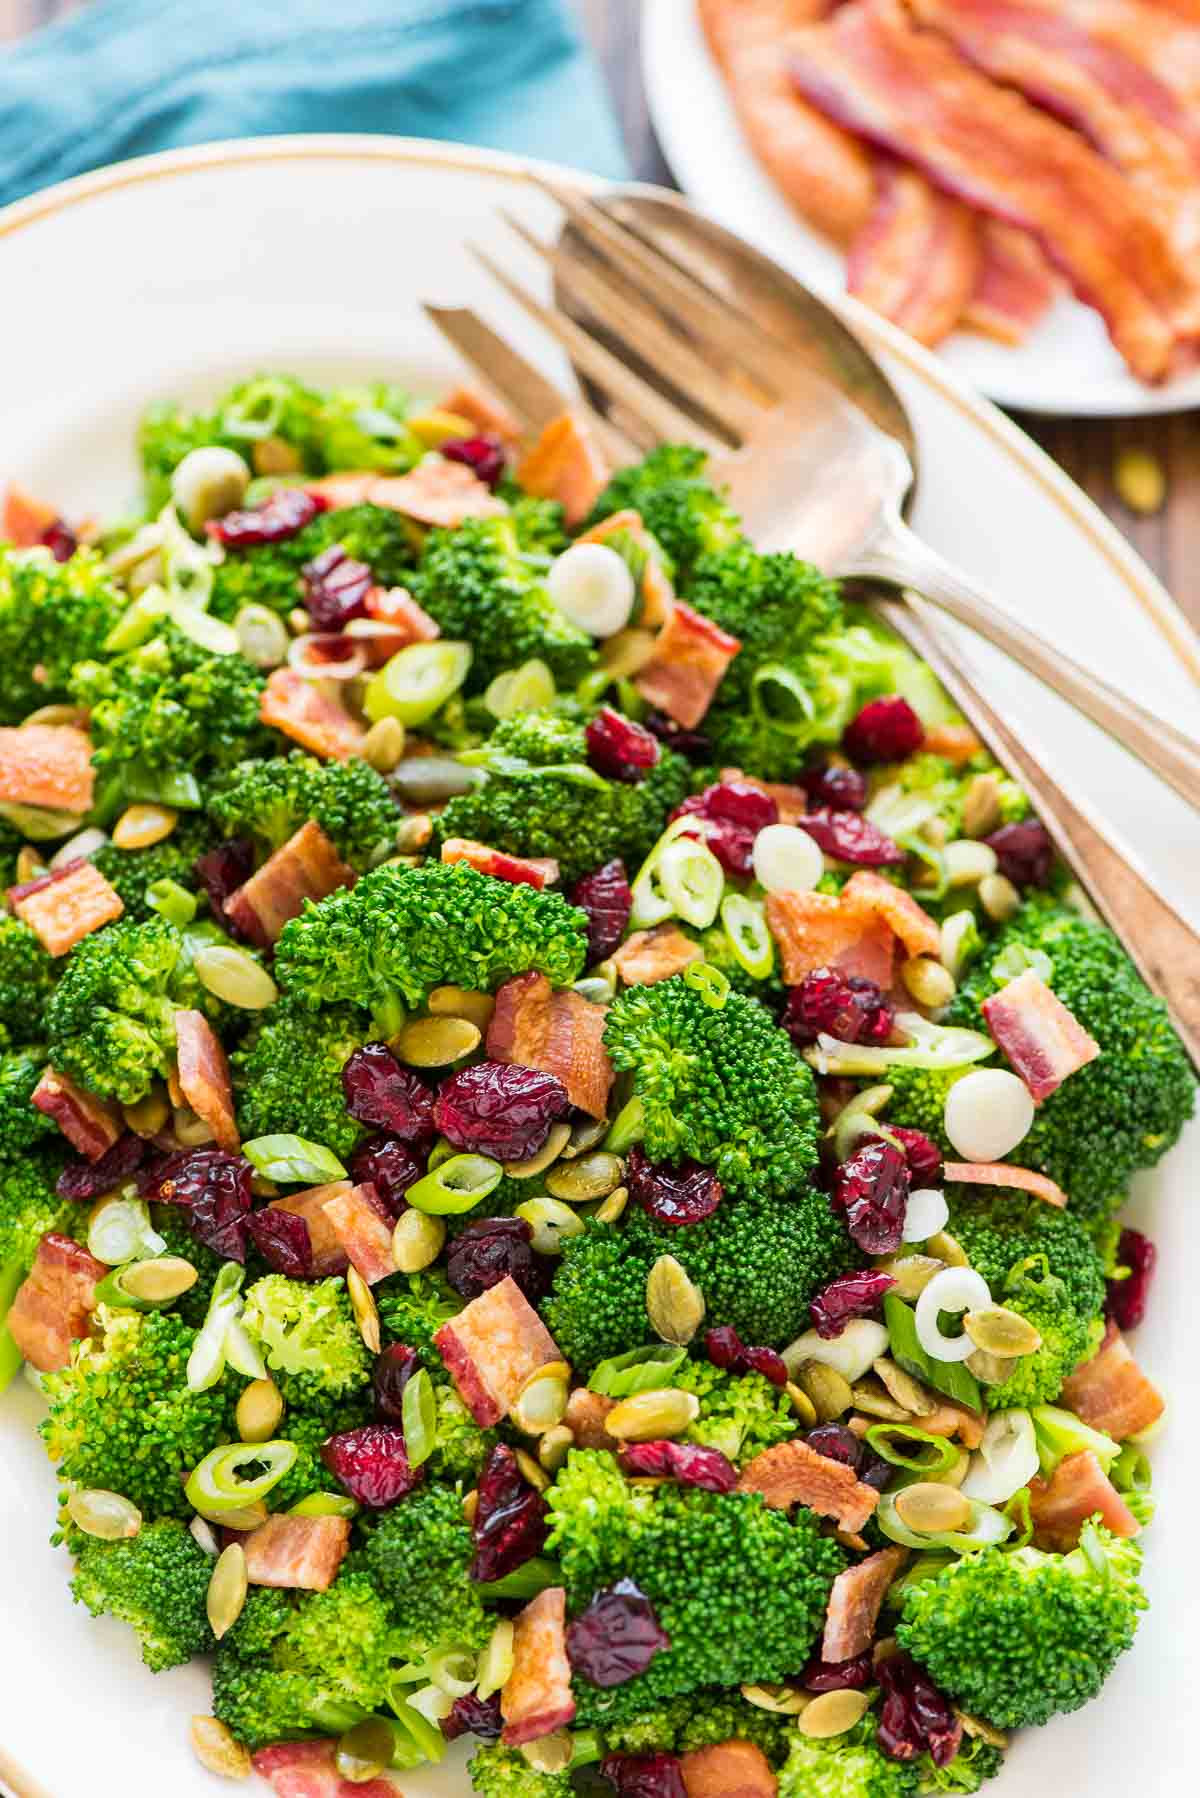 Salads Recipes Healthy  25 Healthy Salads Without Lettuce